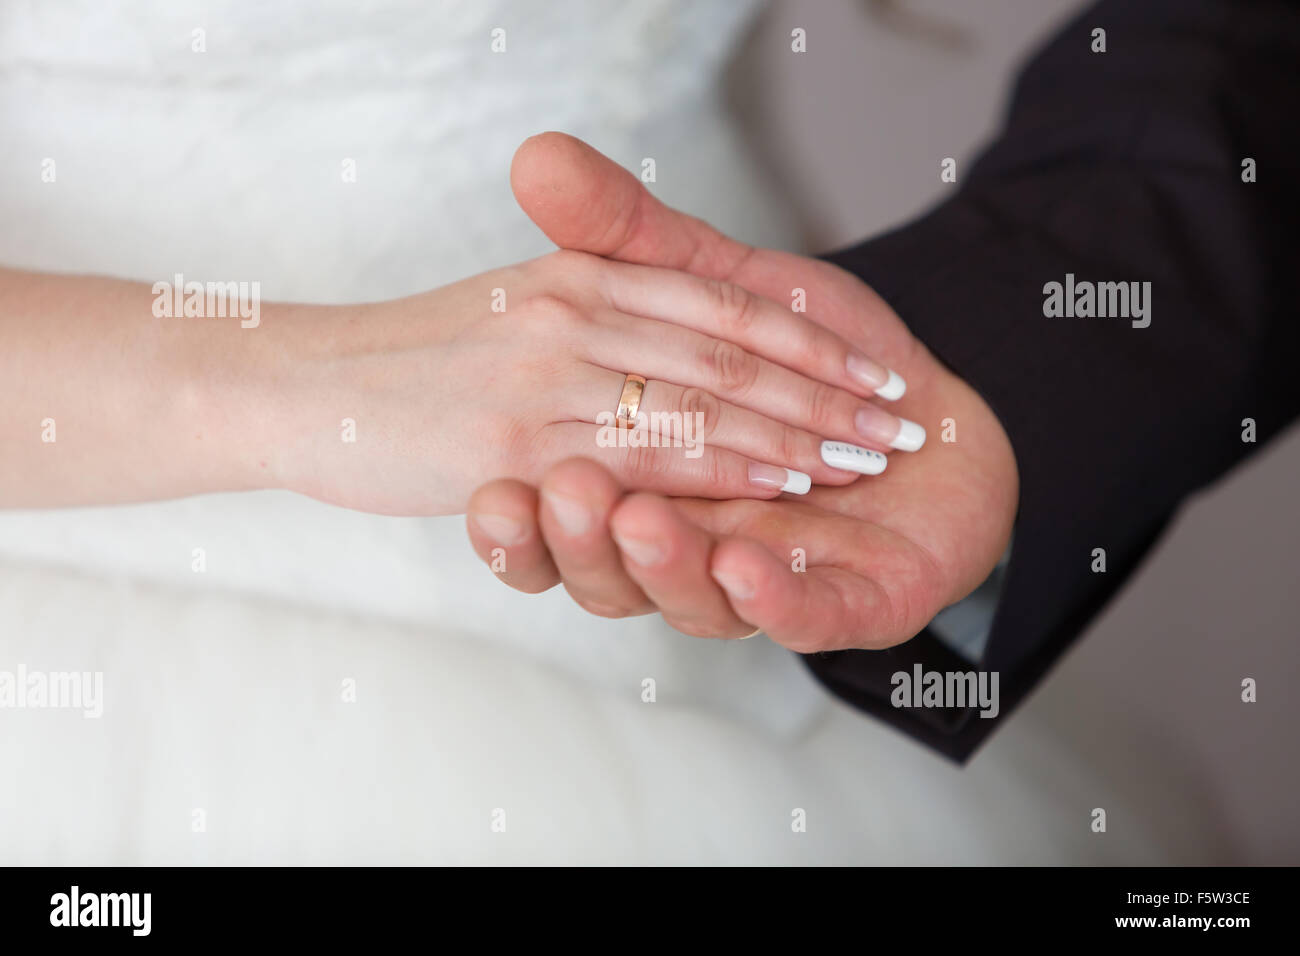 Ring Ceremony Stock Photos & Ring Ceremony Stock Images - Alamy